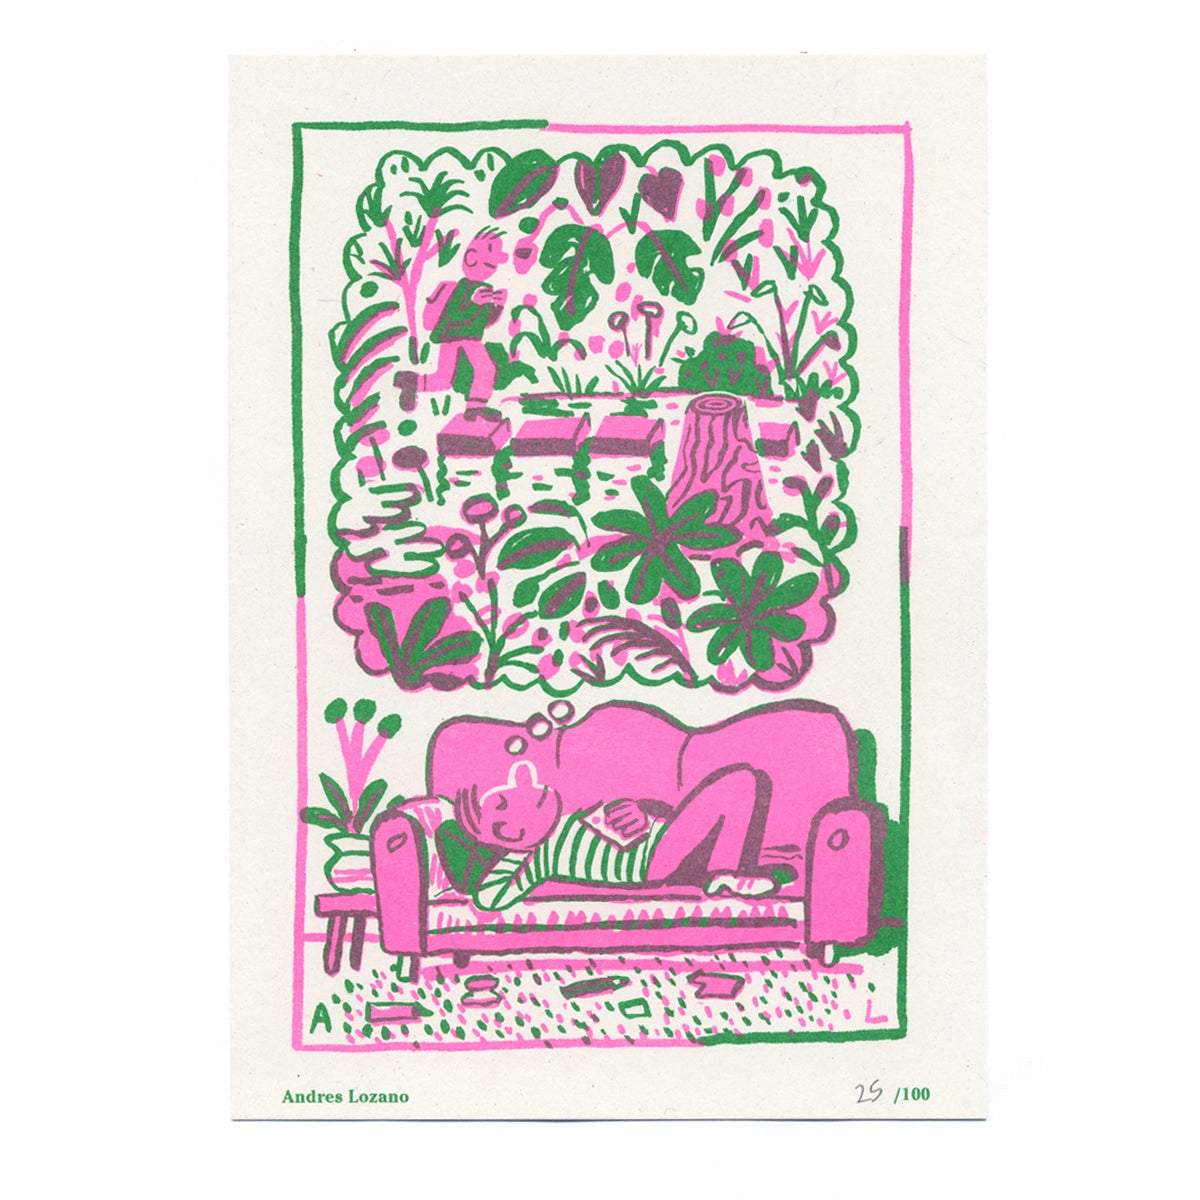 Image of Andres Lozano - Seed Artist Series Riso Print